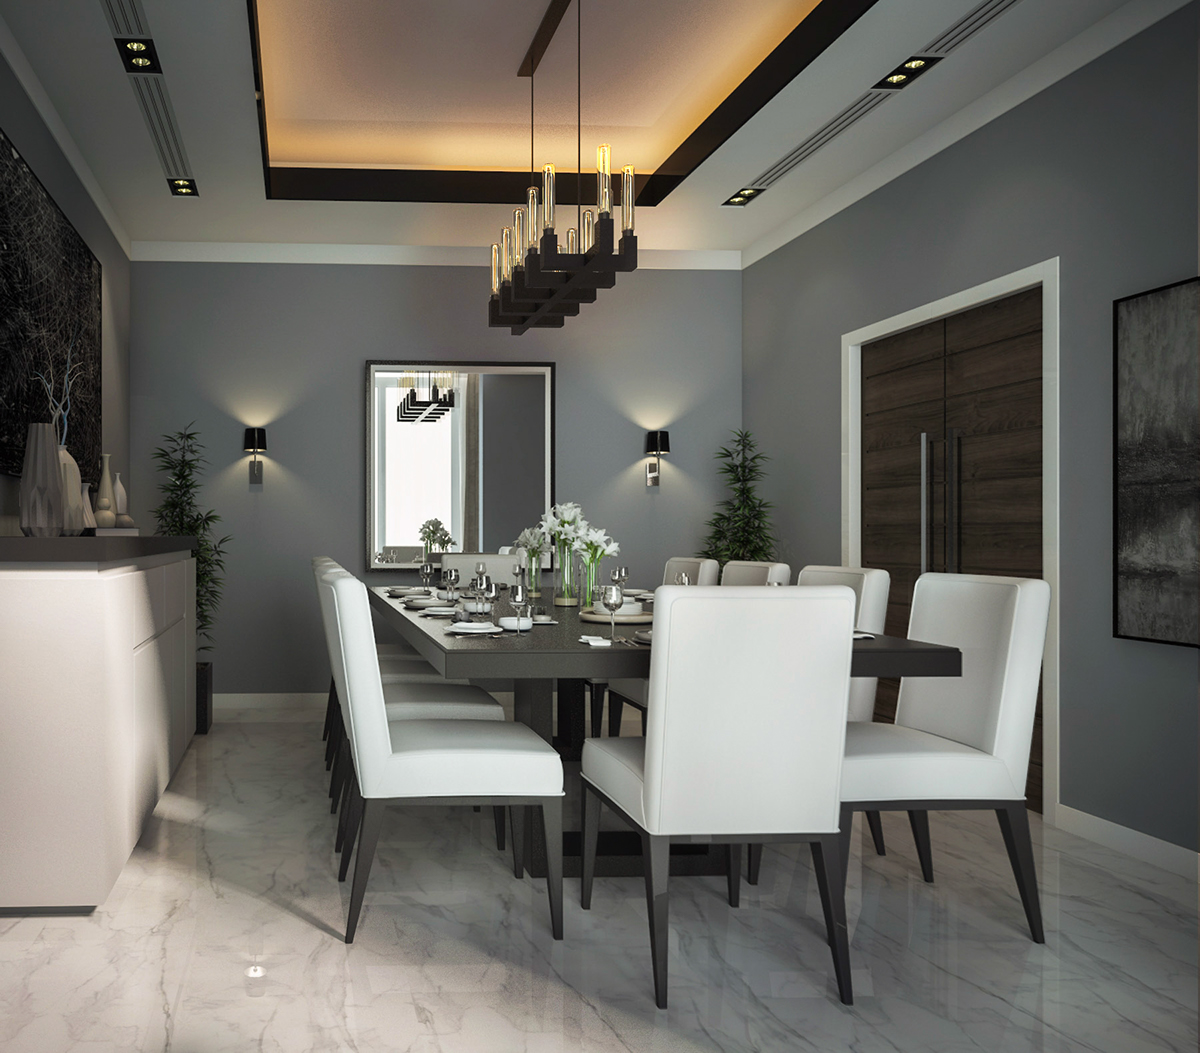 Modern Interior Design - Dining Room on Behance